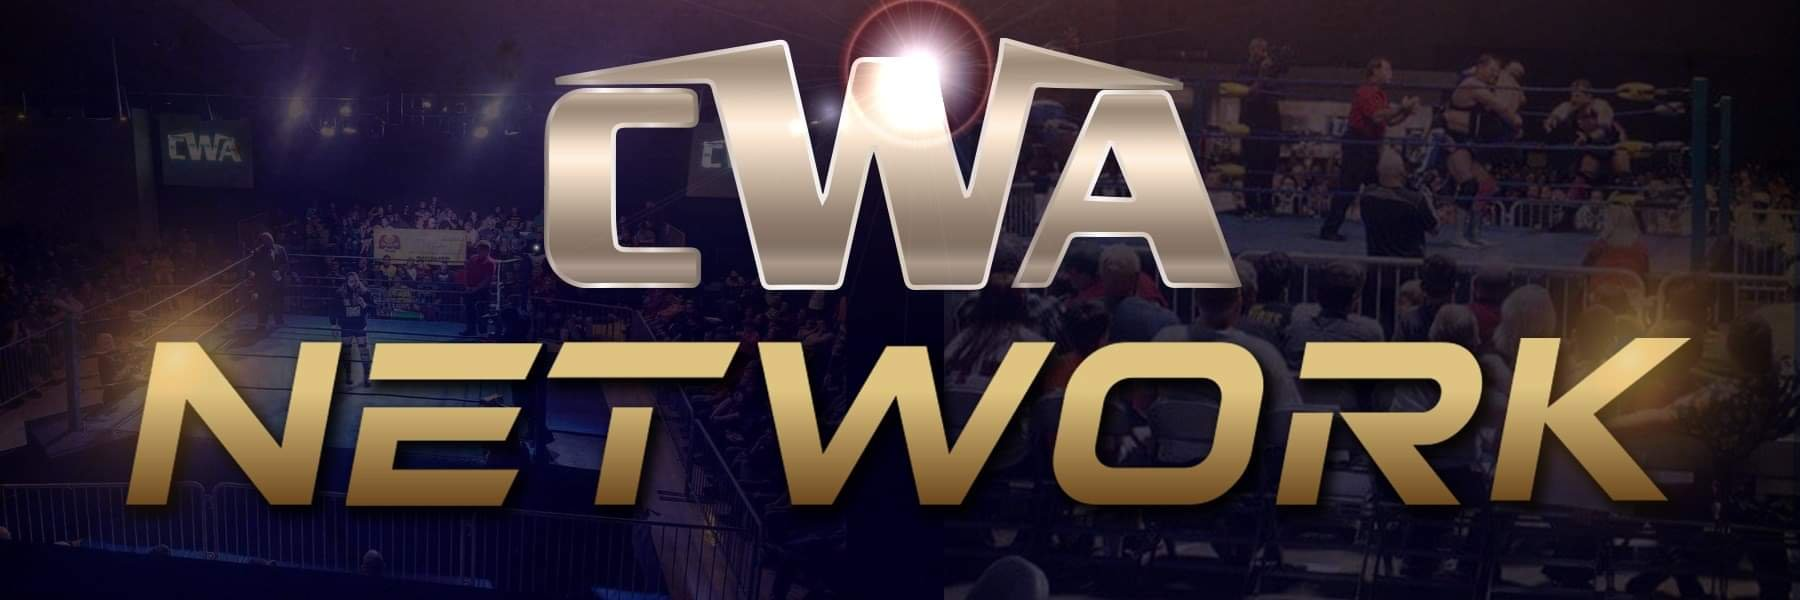 CWA Wrestling Network